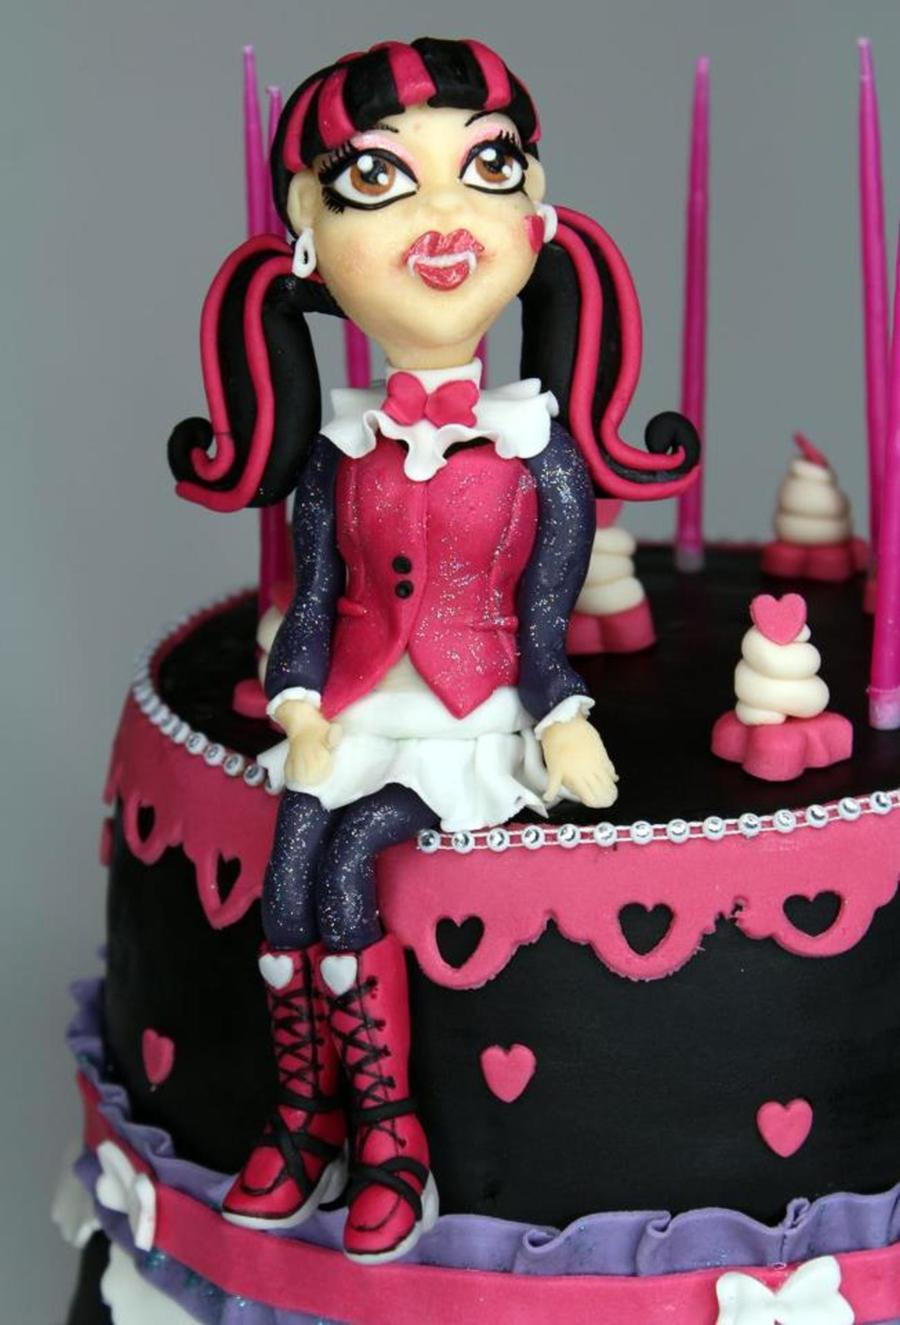 Draculaura Monster High on Cake Central